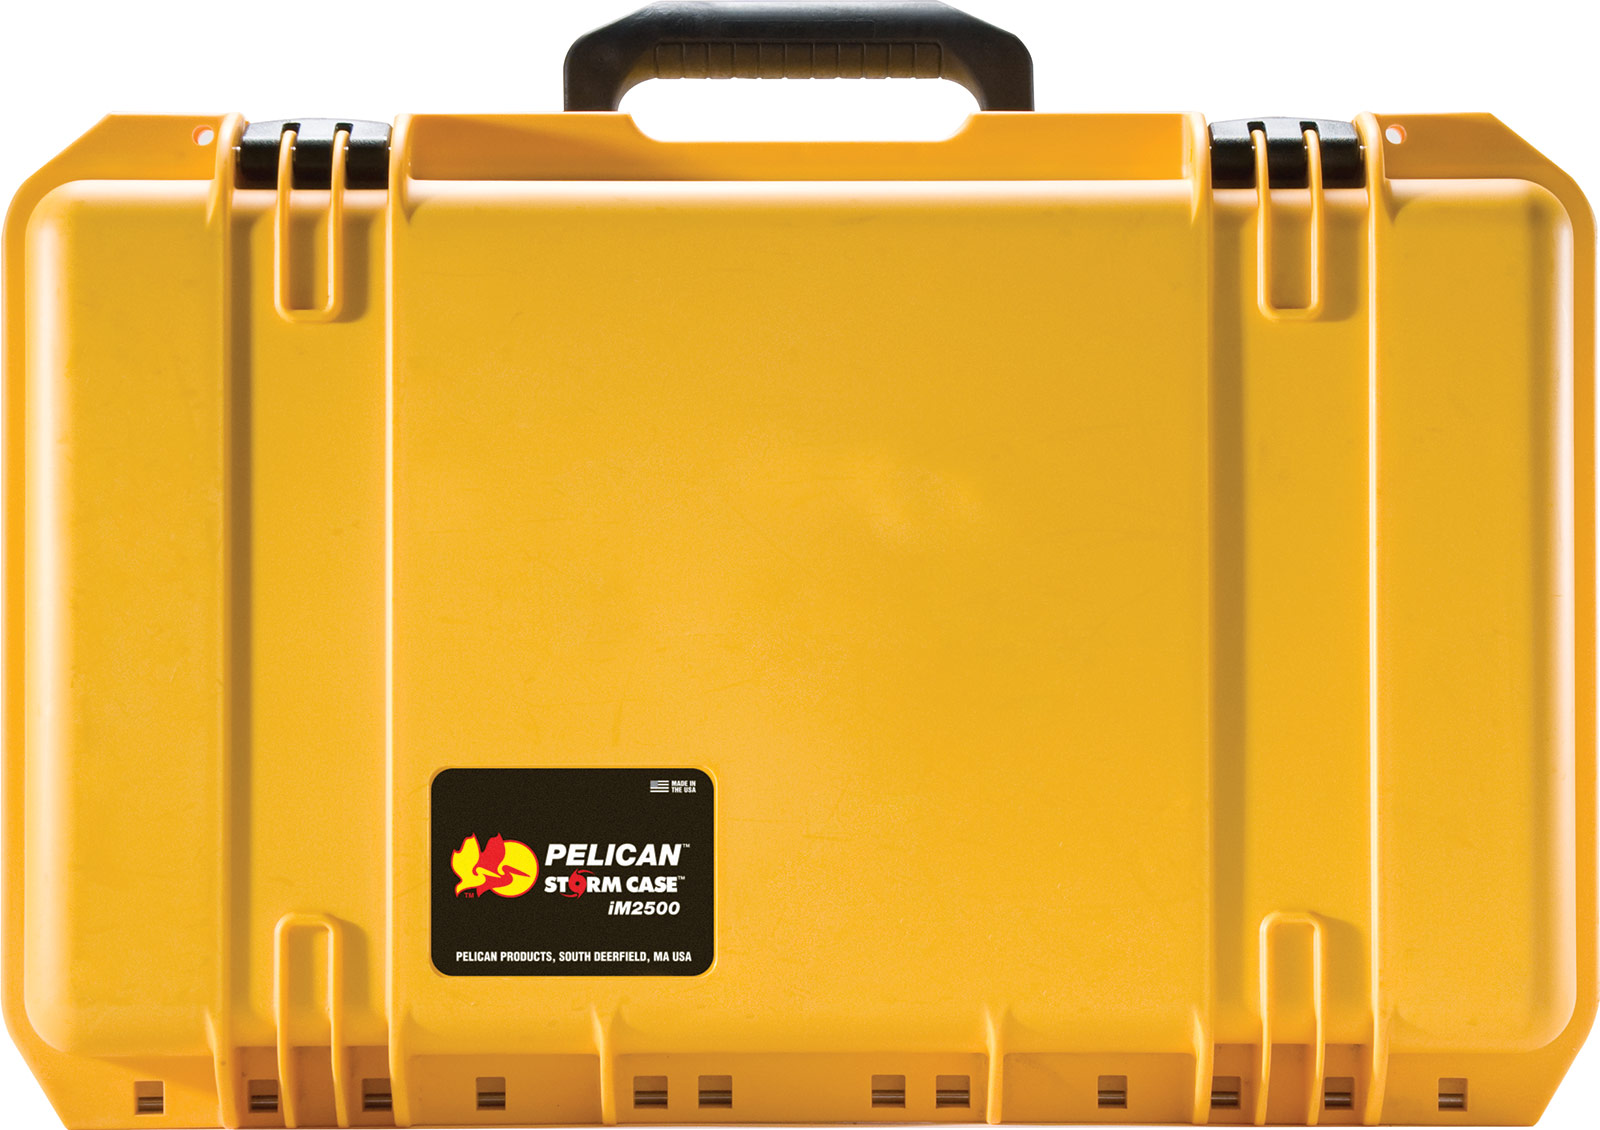 pelican im2500 yellow hard case